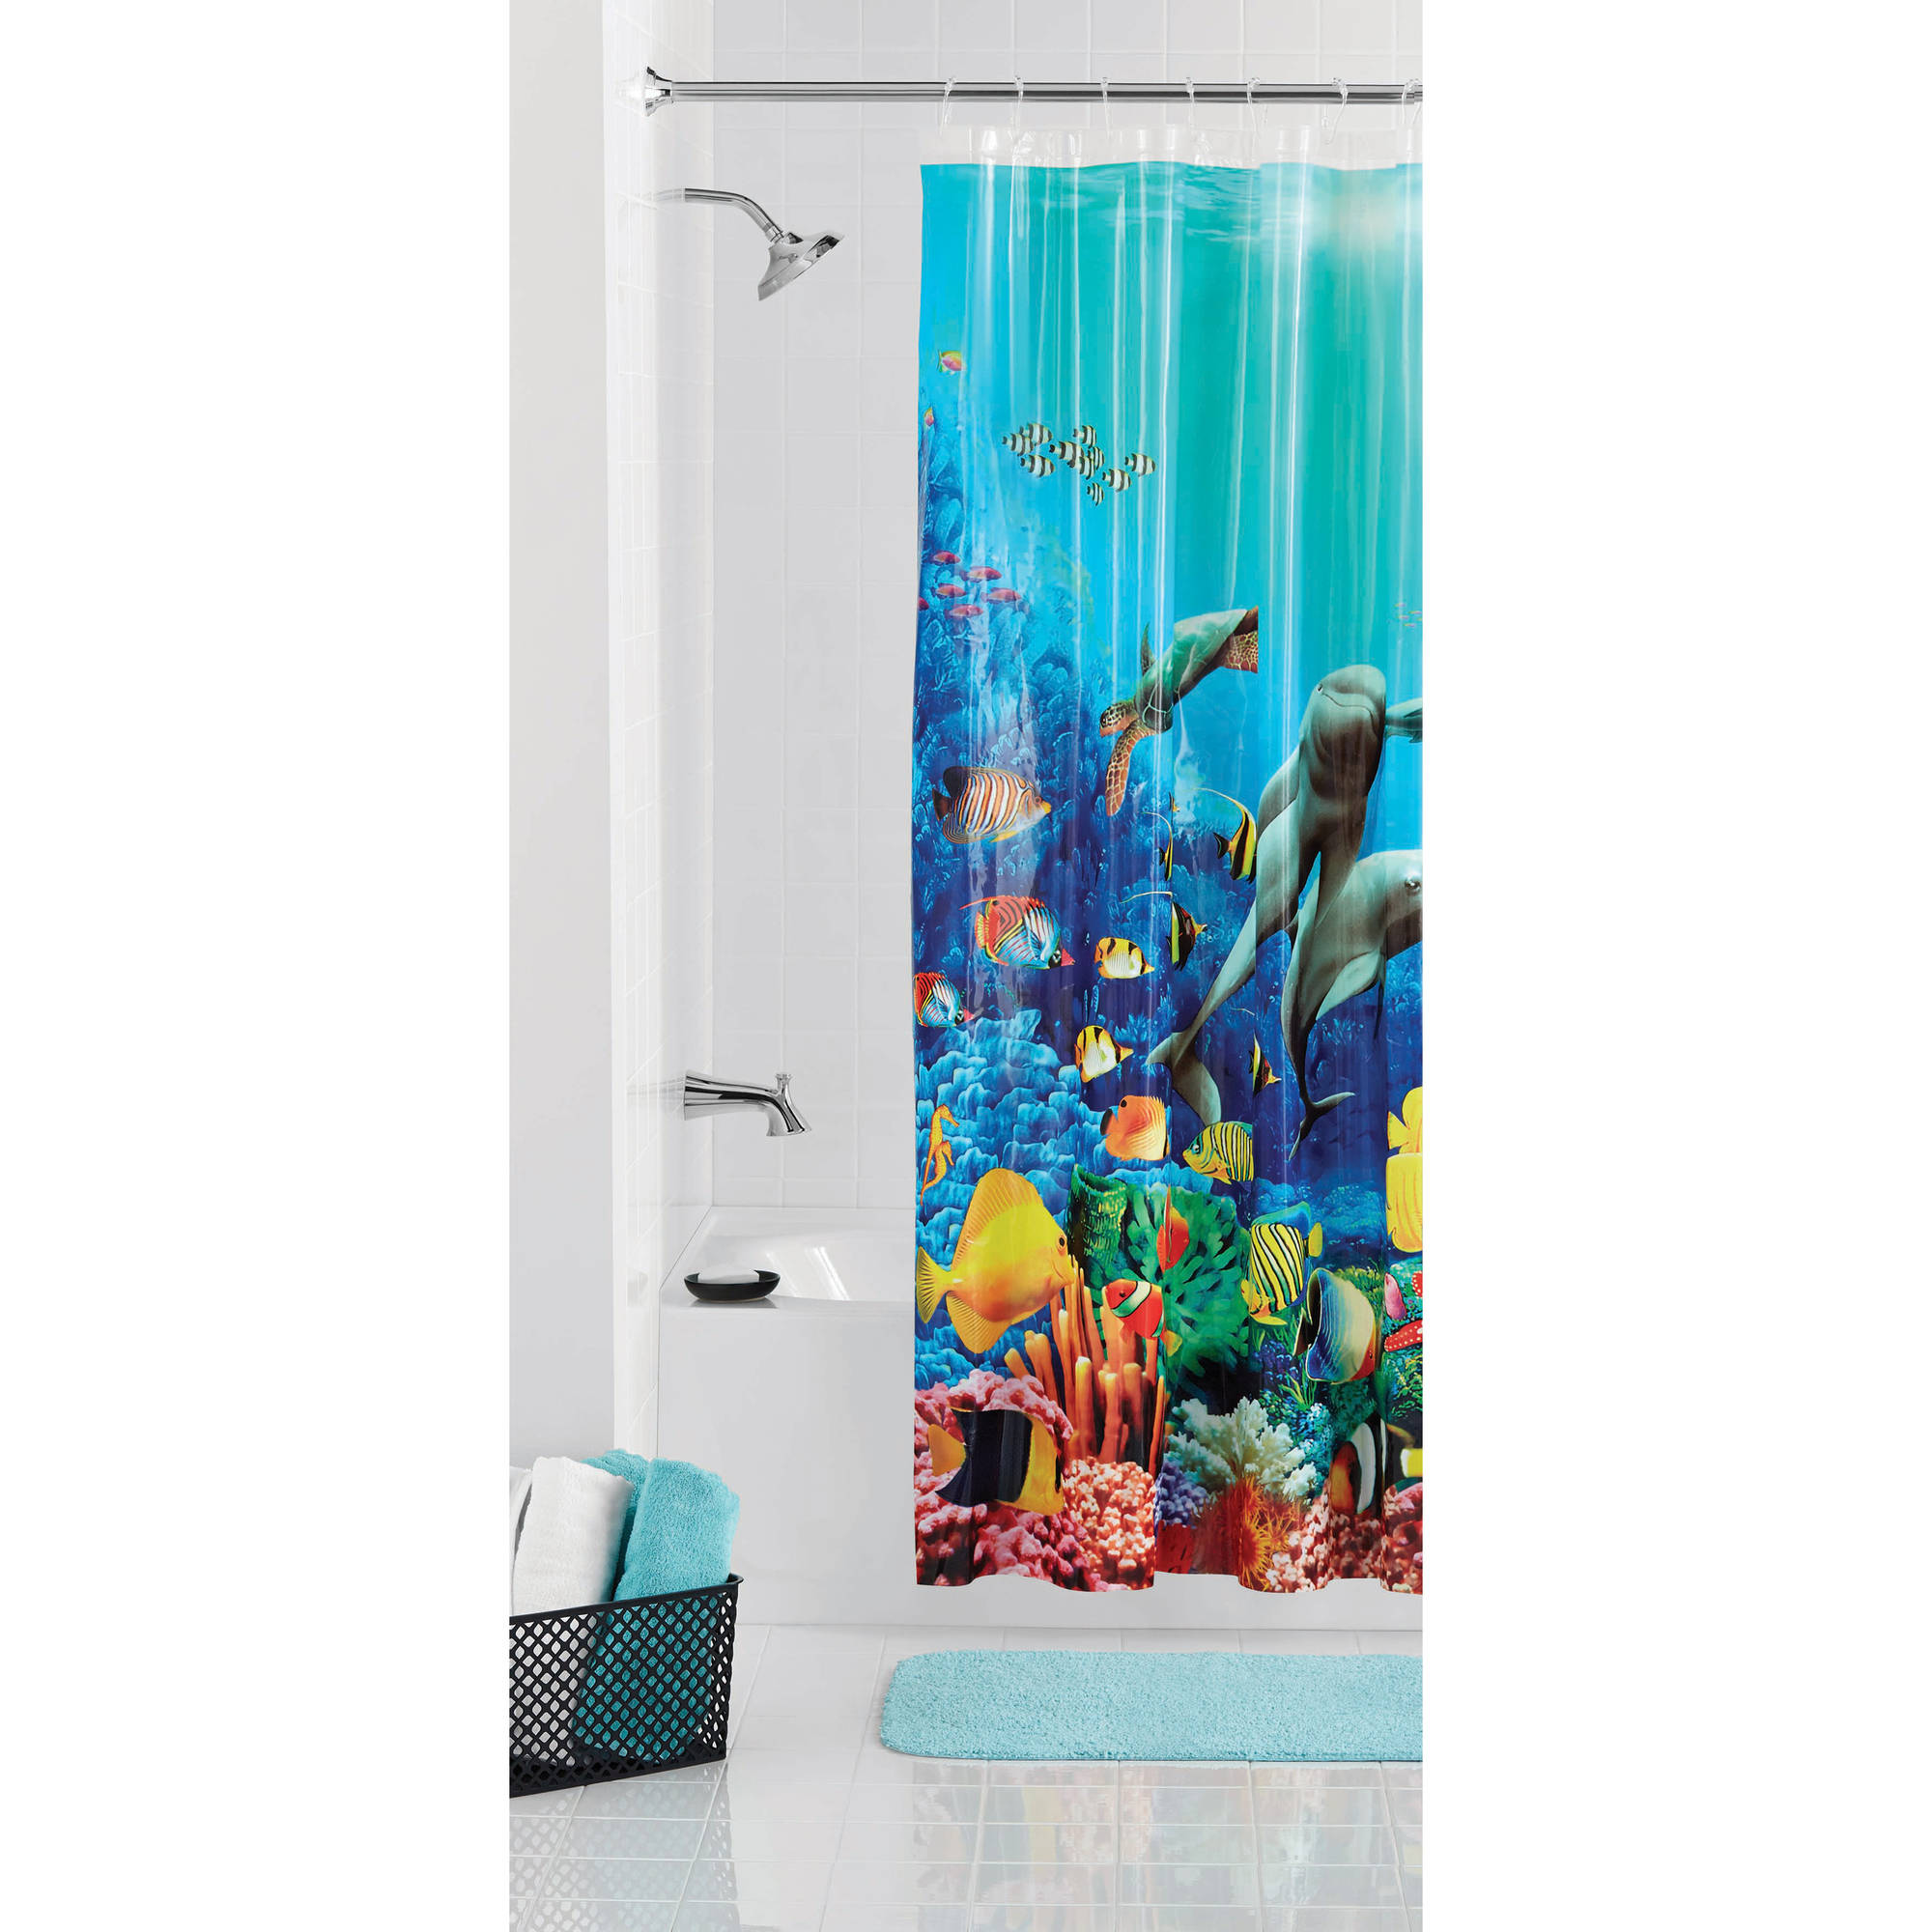 Shower Curtains Walmartcom Walmartcom